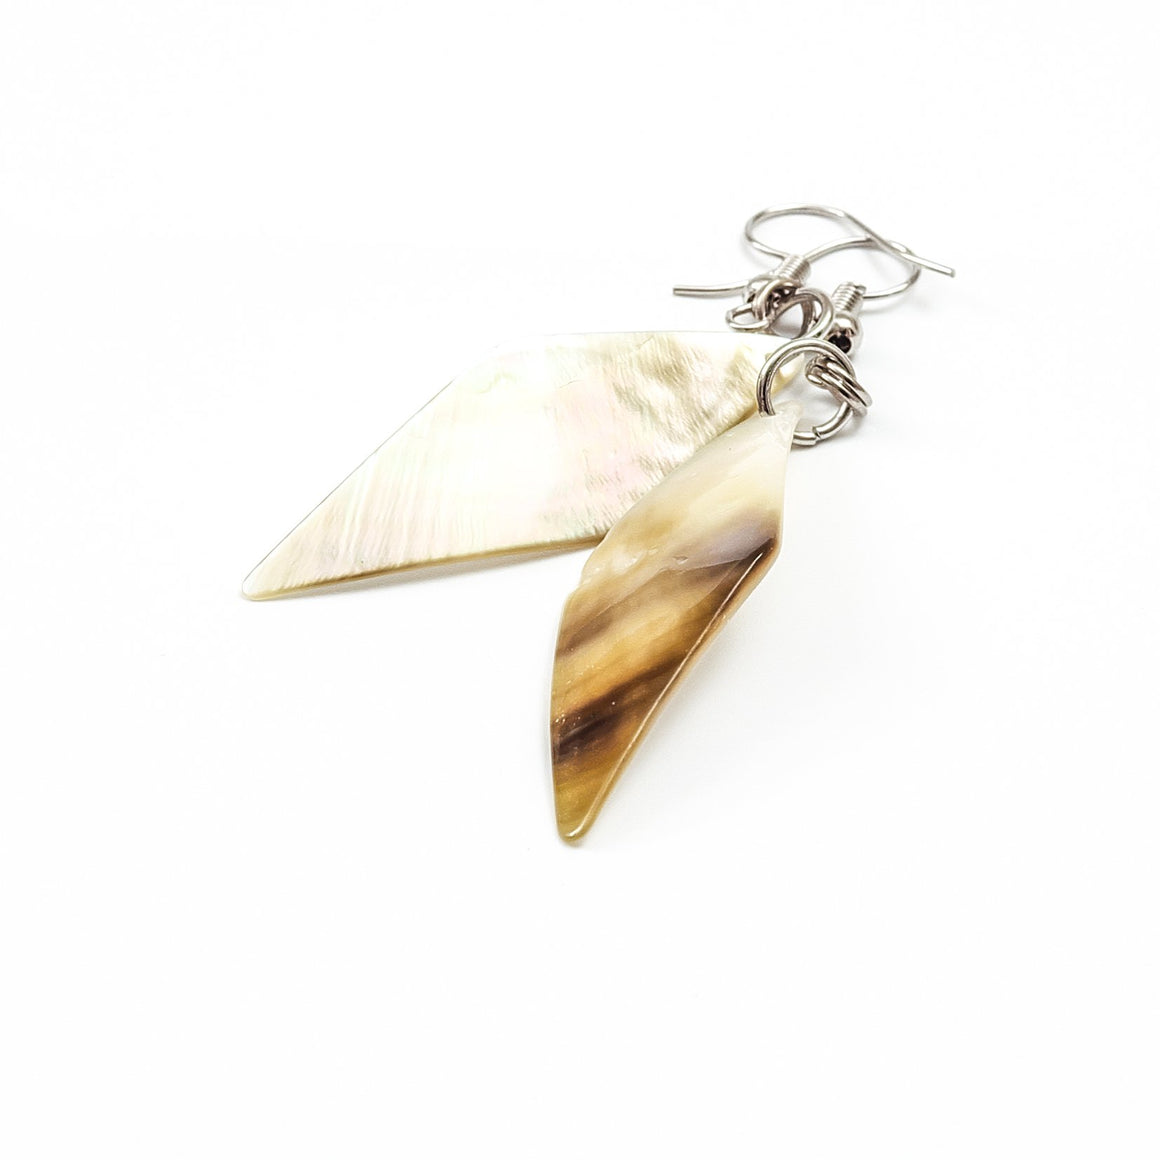 ethical earrings - philippines mother of pearl